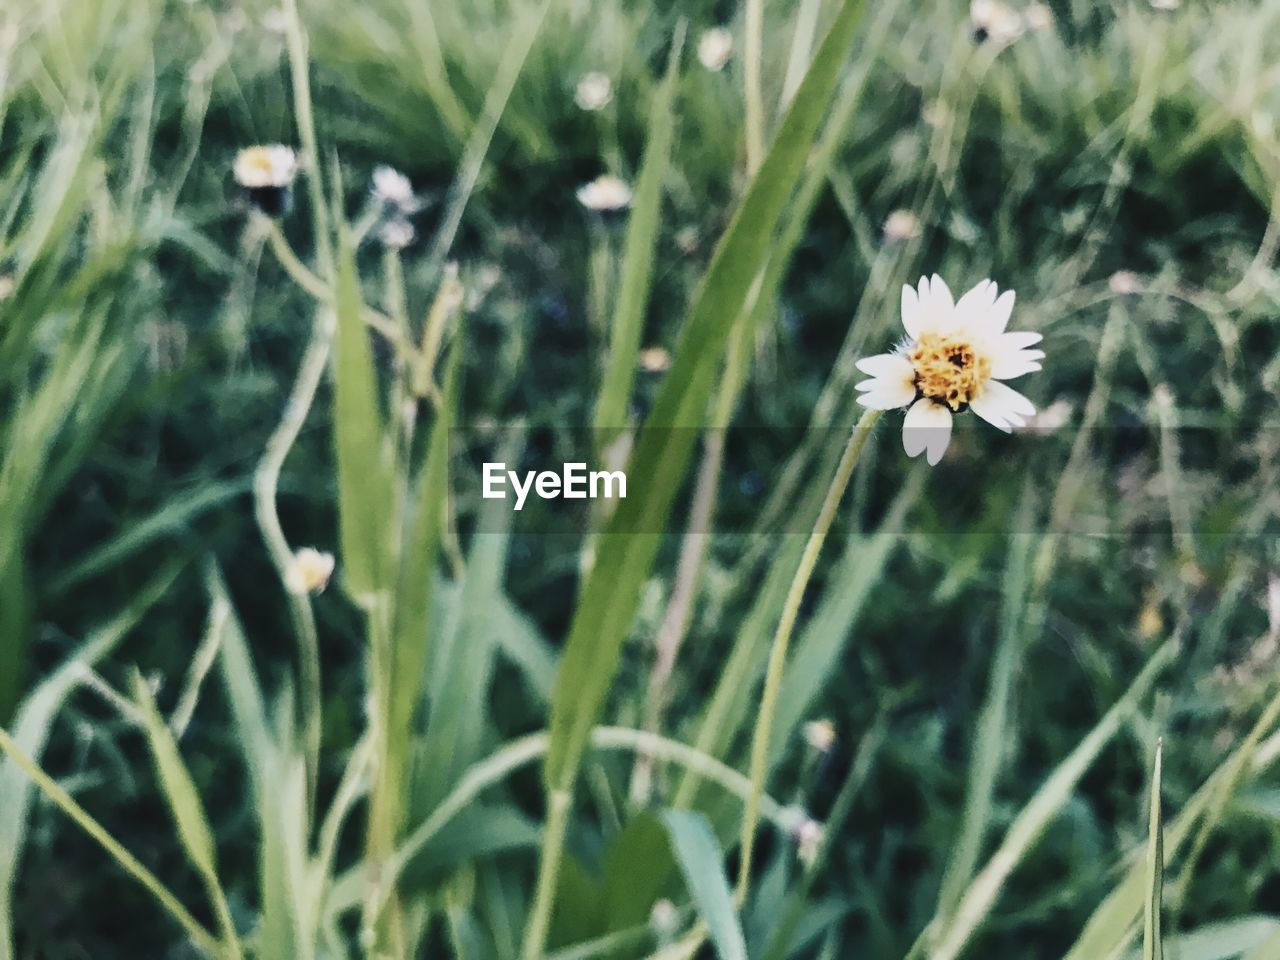 flower, growth, fragility, nature, plant, petal, freshness, flower head, beauty in nature, field, blooming, no people, outdoors, day, grass, close-up